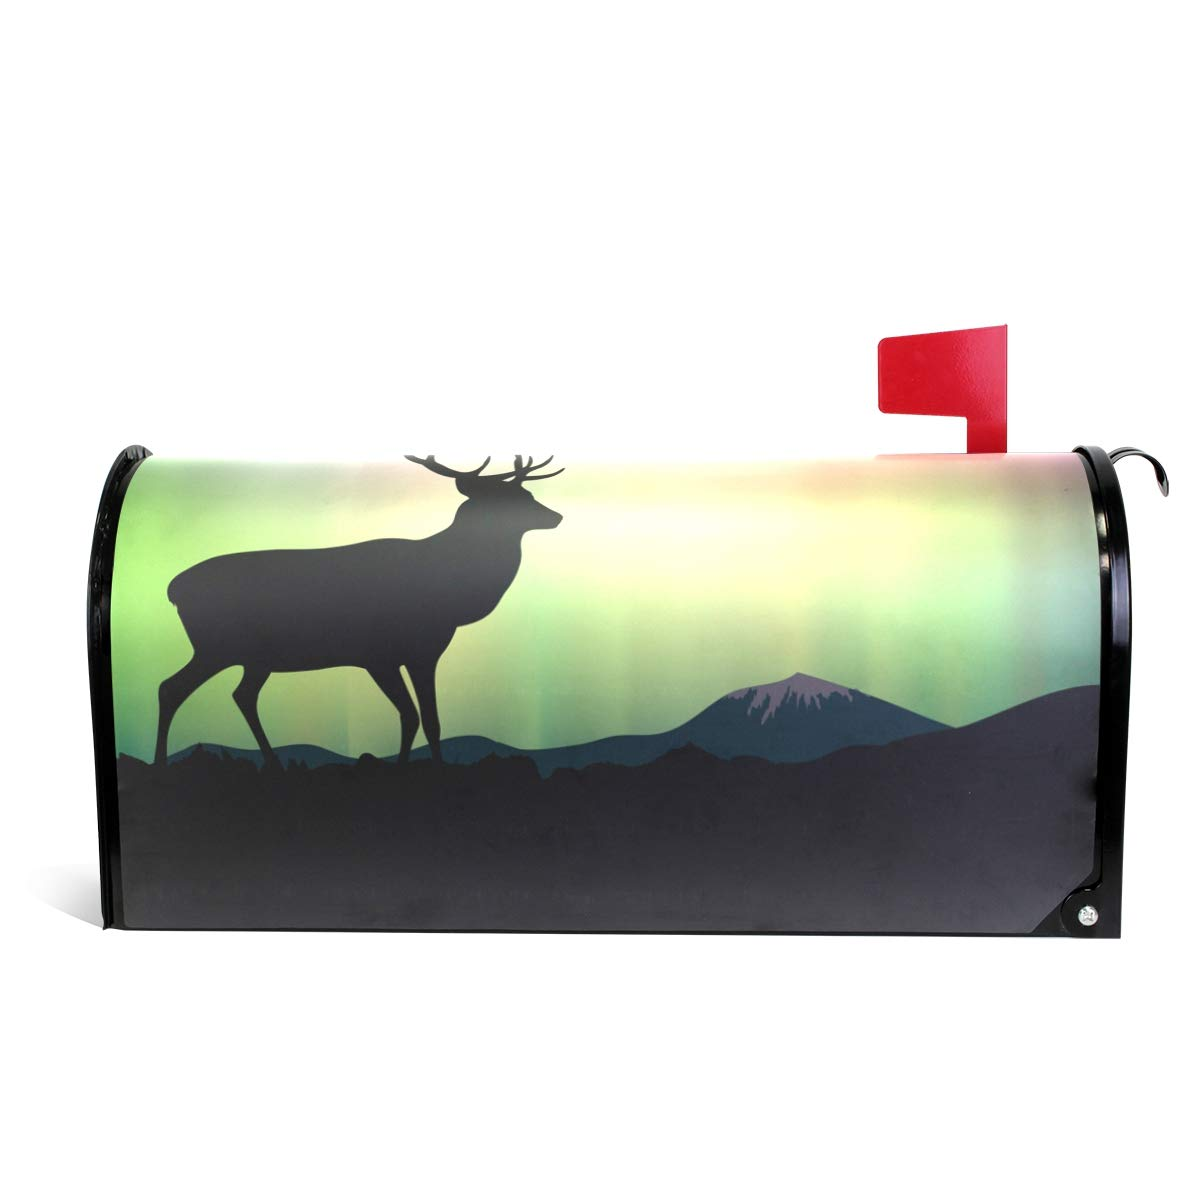 MAPOLO The Northern Lights Deer Magnetic Mailbox Cover for Standard Size